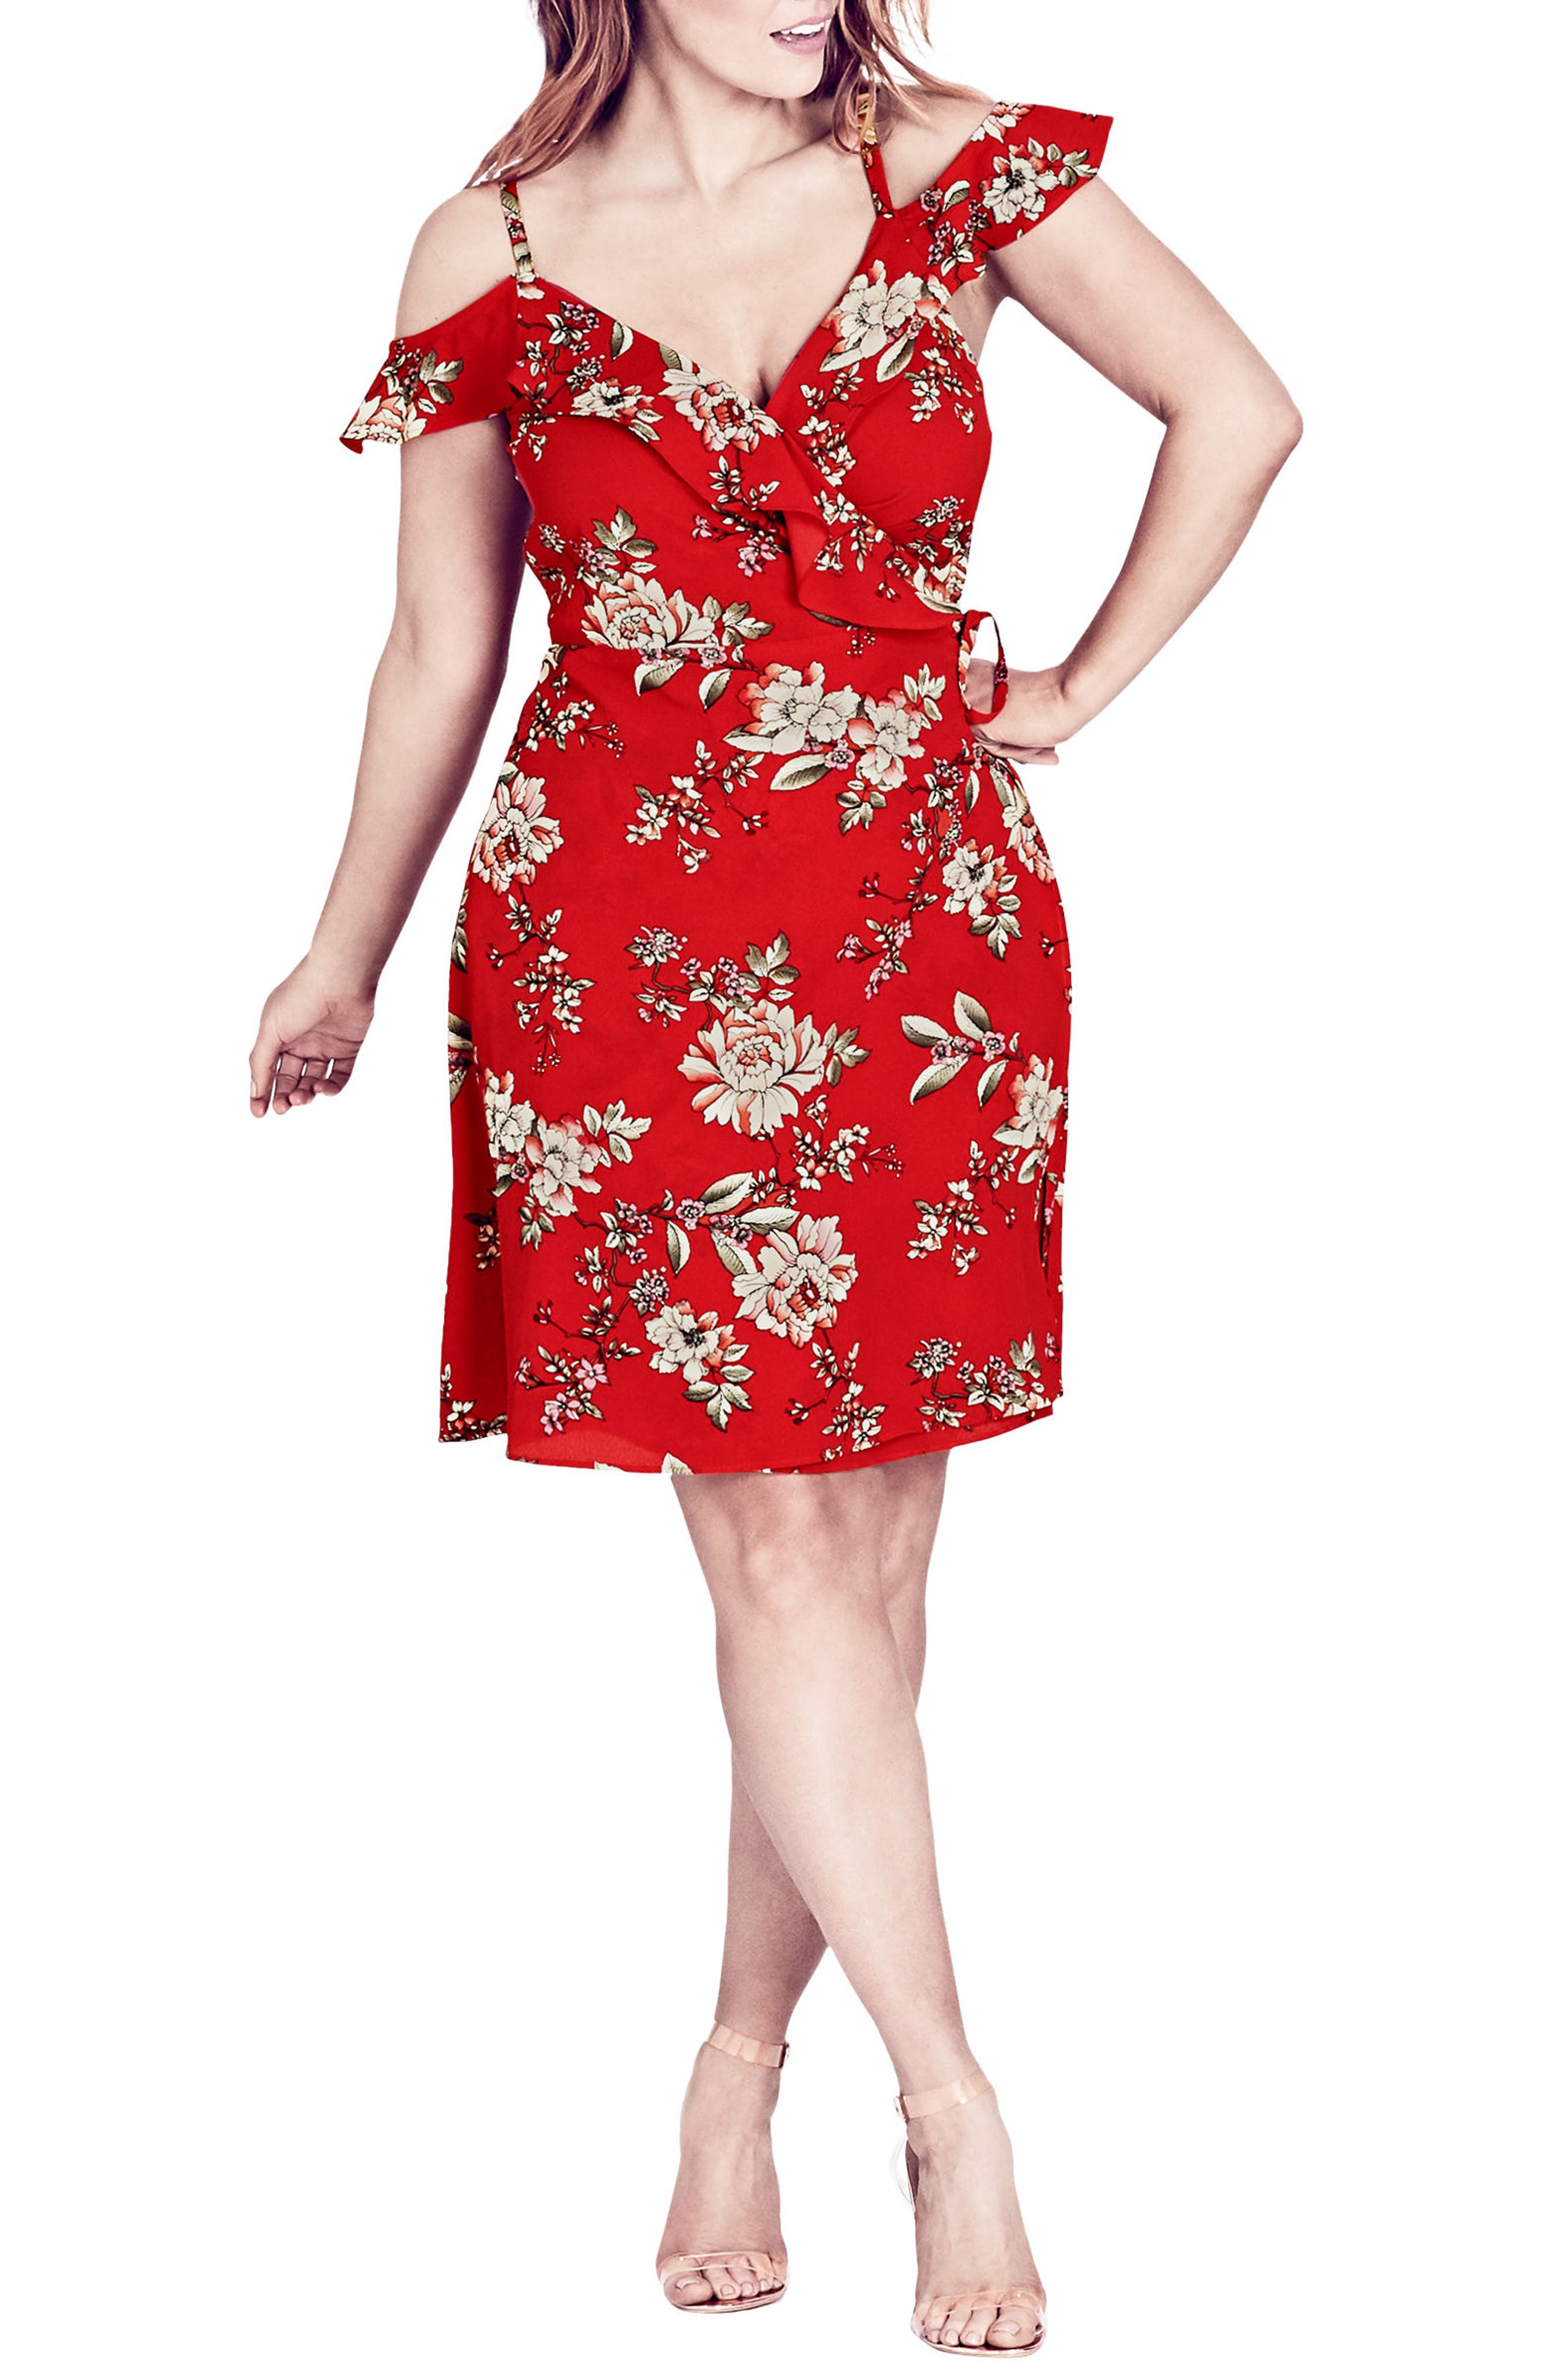 Alternate Image 1 Selected - City Chic Wild Floral Cold Shoulder Dress (Plus Size)